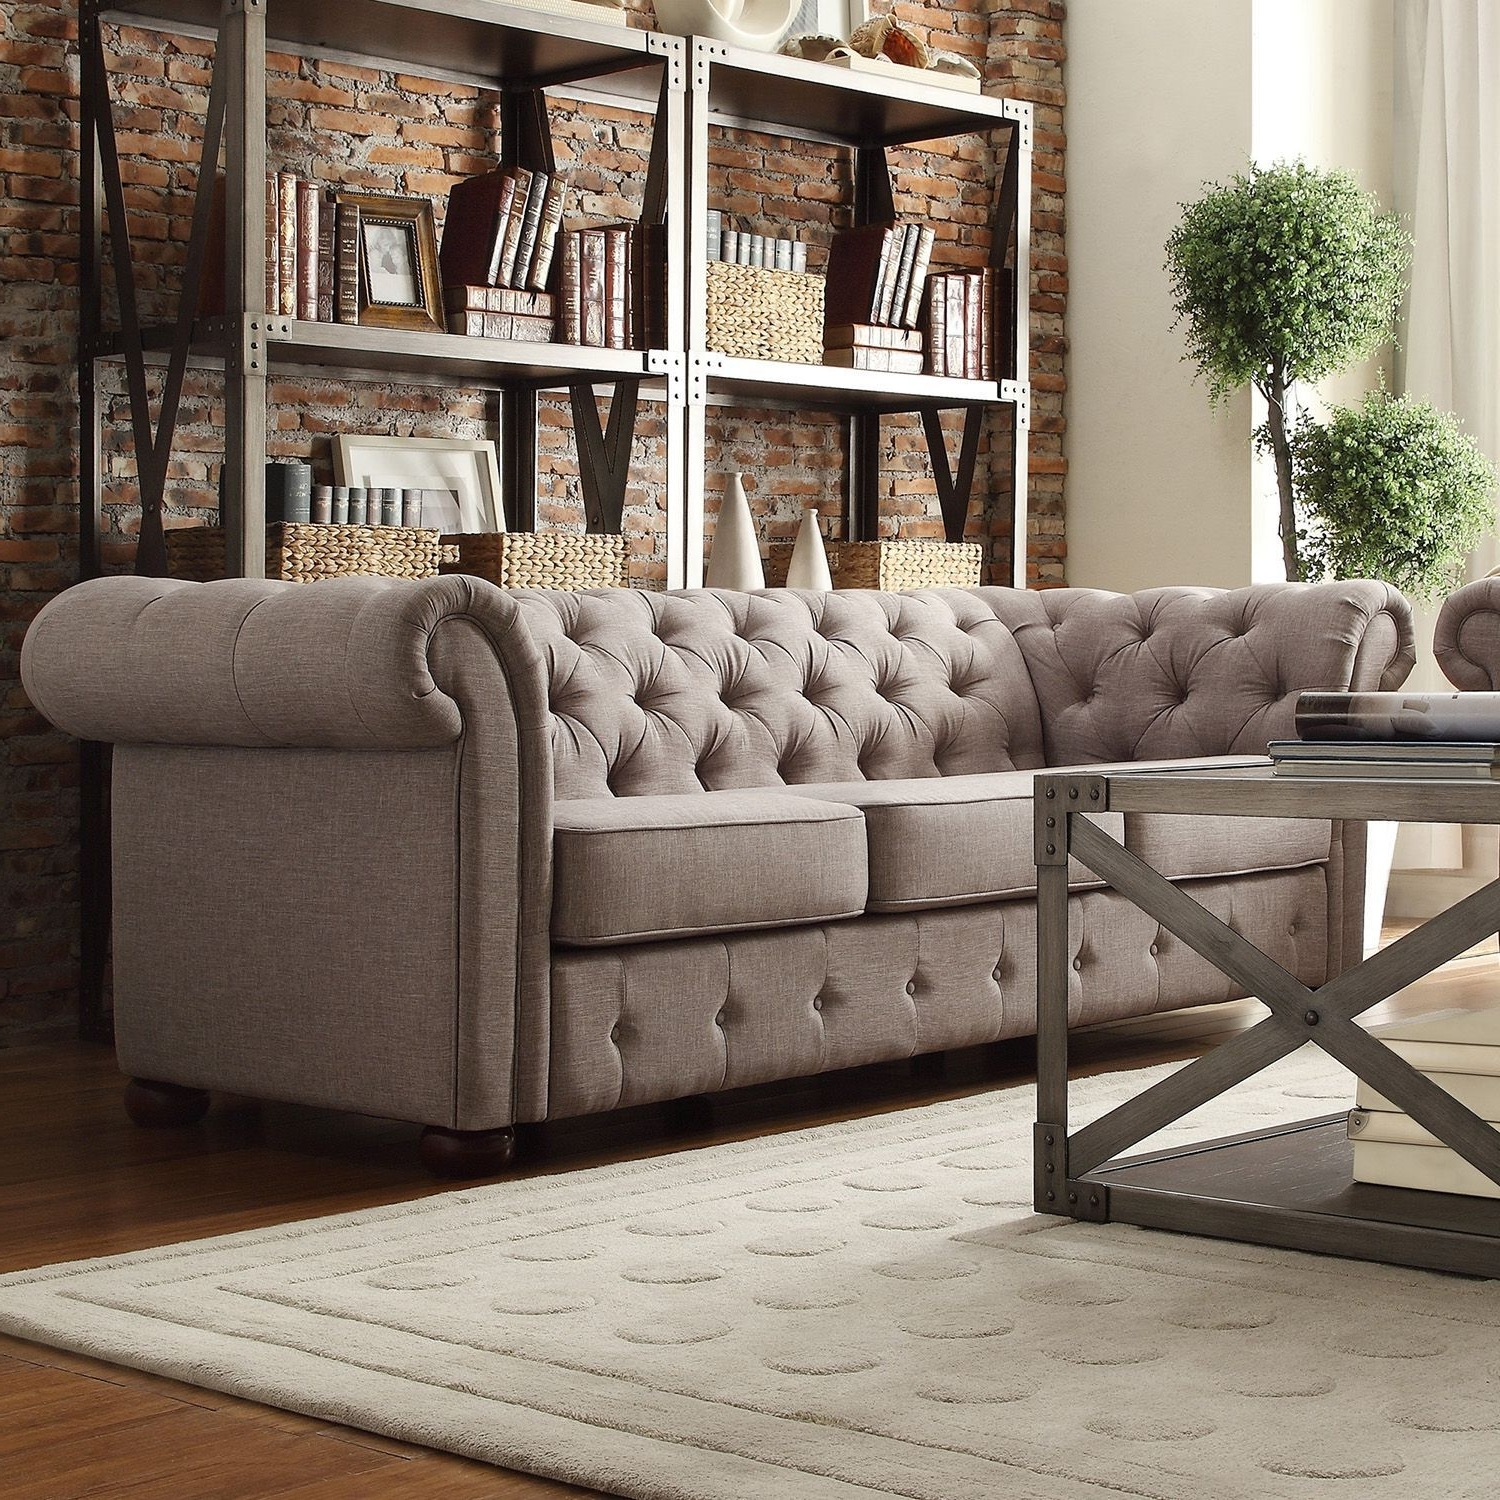 Linens, Tufted Sofa And In Tufted Linen Sofas (View 4 of 15)